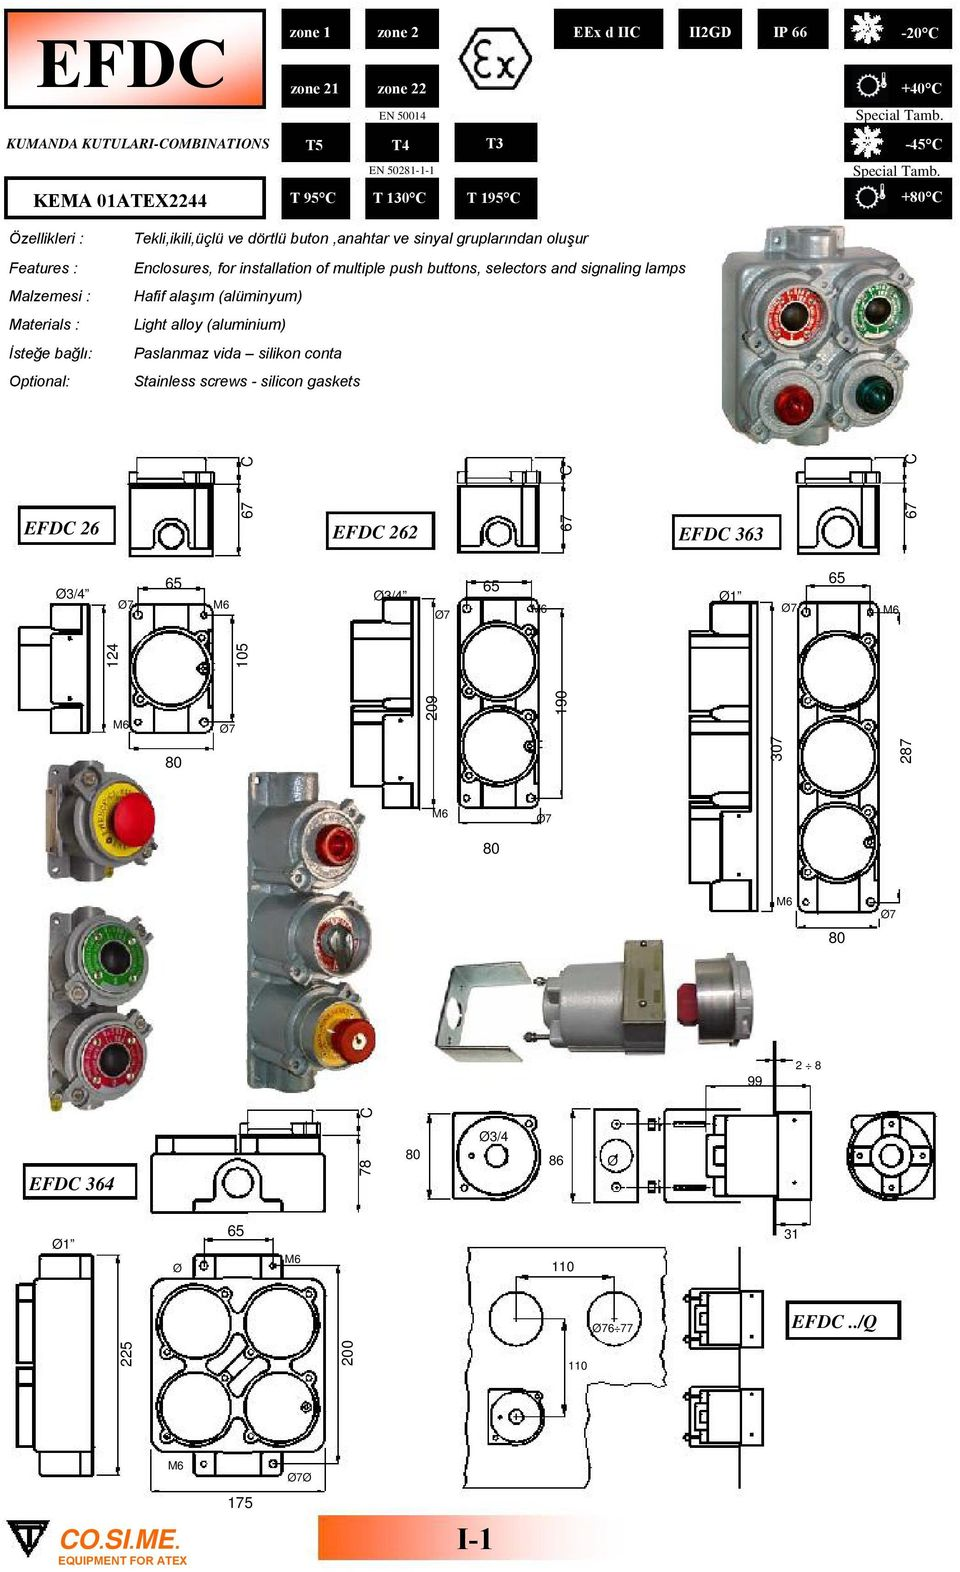 buton,anahtar ve sinyal gruplarından oluşur Enclosures, for installation of multiple push buttons, selectors and signaling lamps Hafif